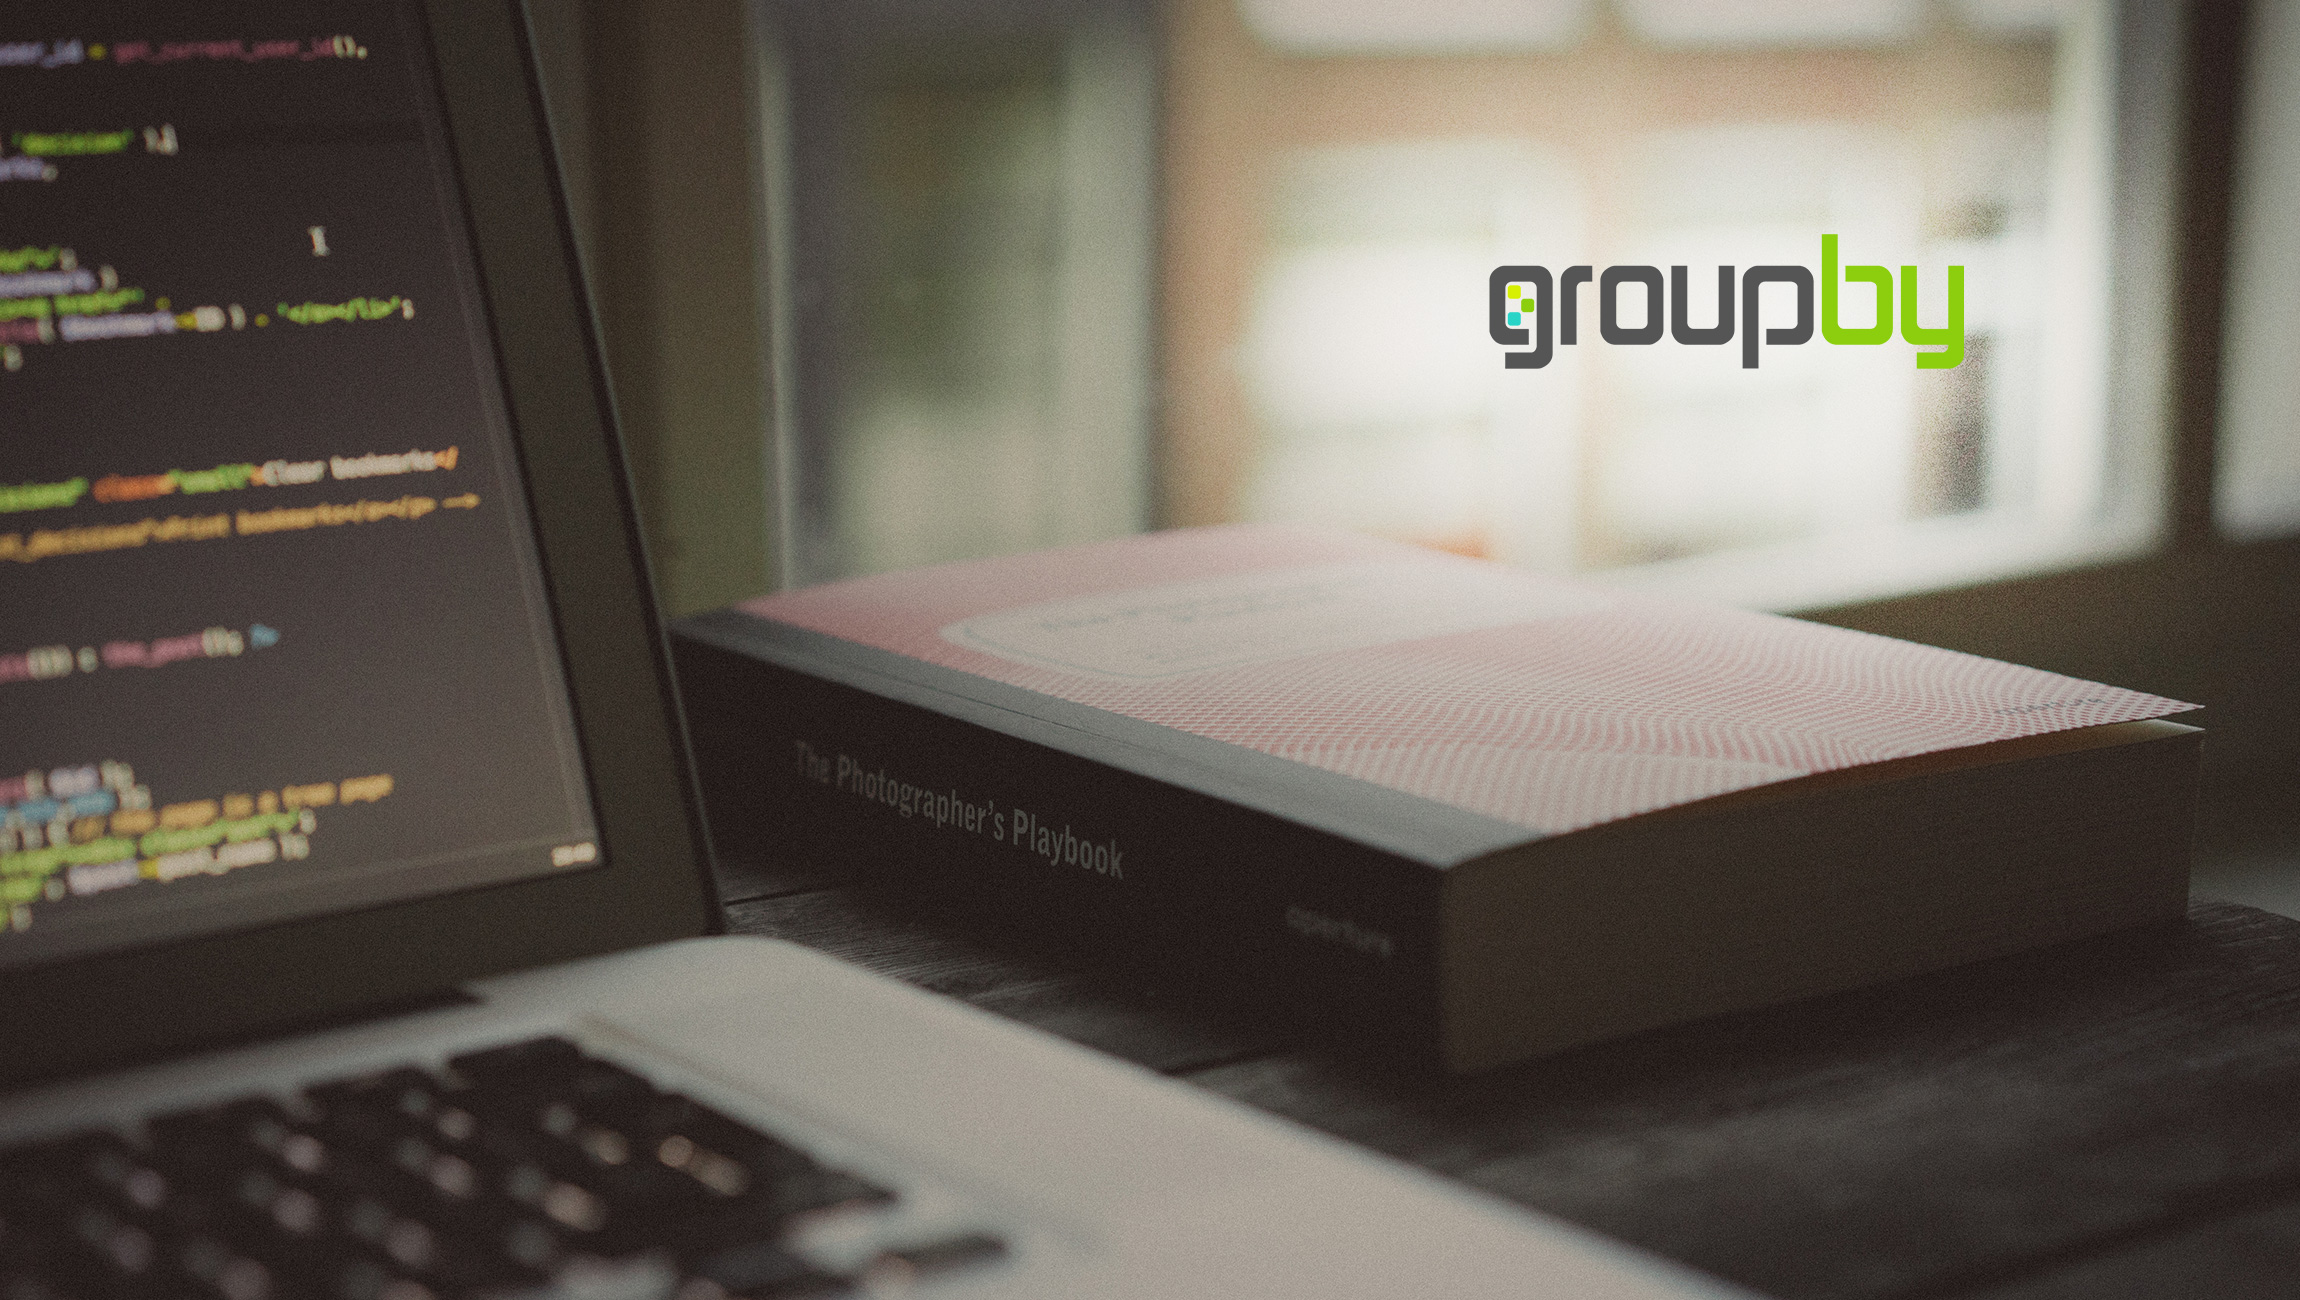 GroupBy Included in Gartner's Market Guide for Digital Commerce Search